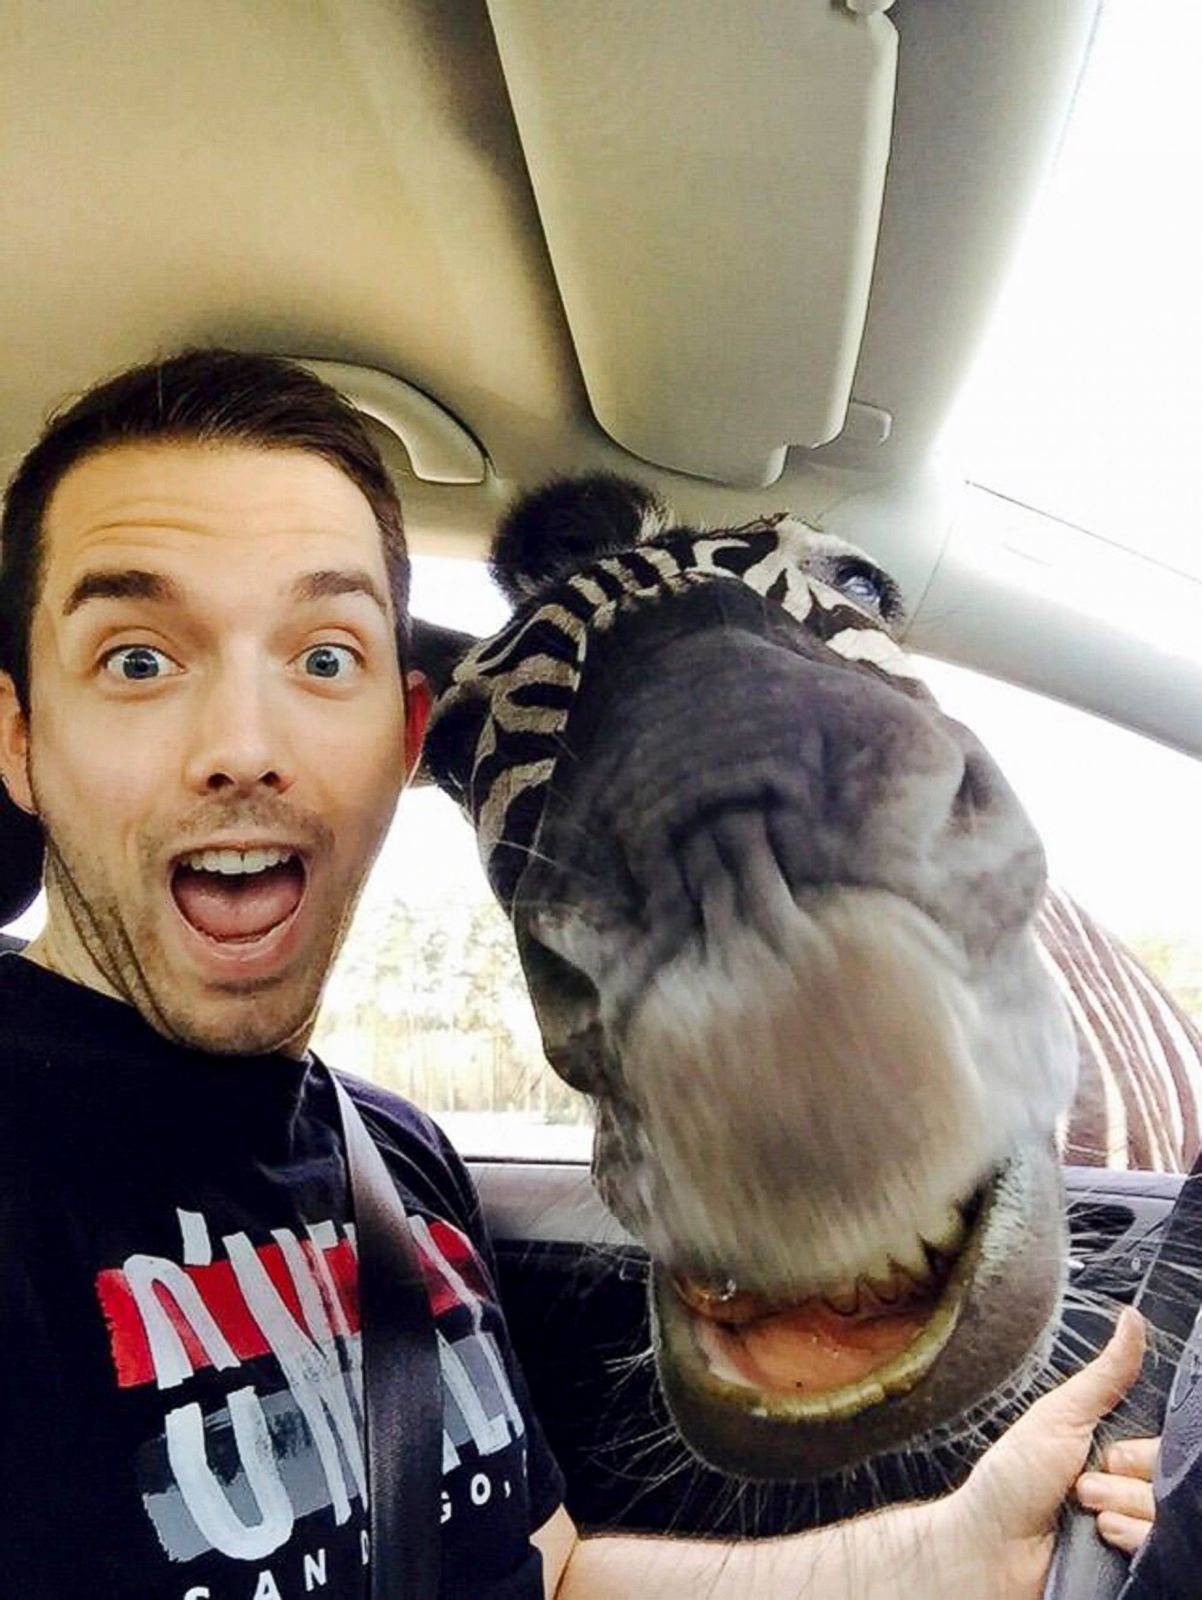 Say Cheese! Camel Smiles For Selfie Picture | Amazing Animal ...